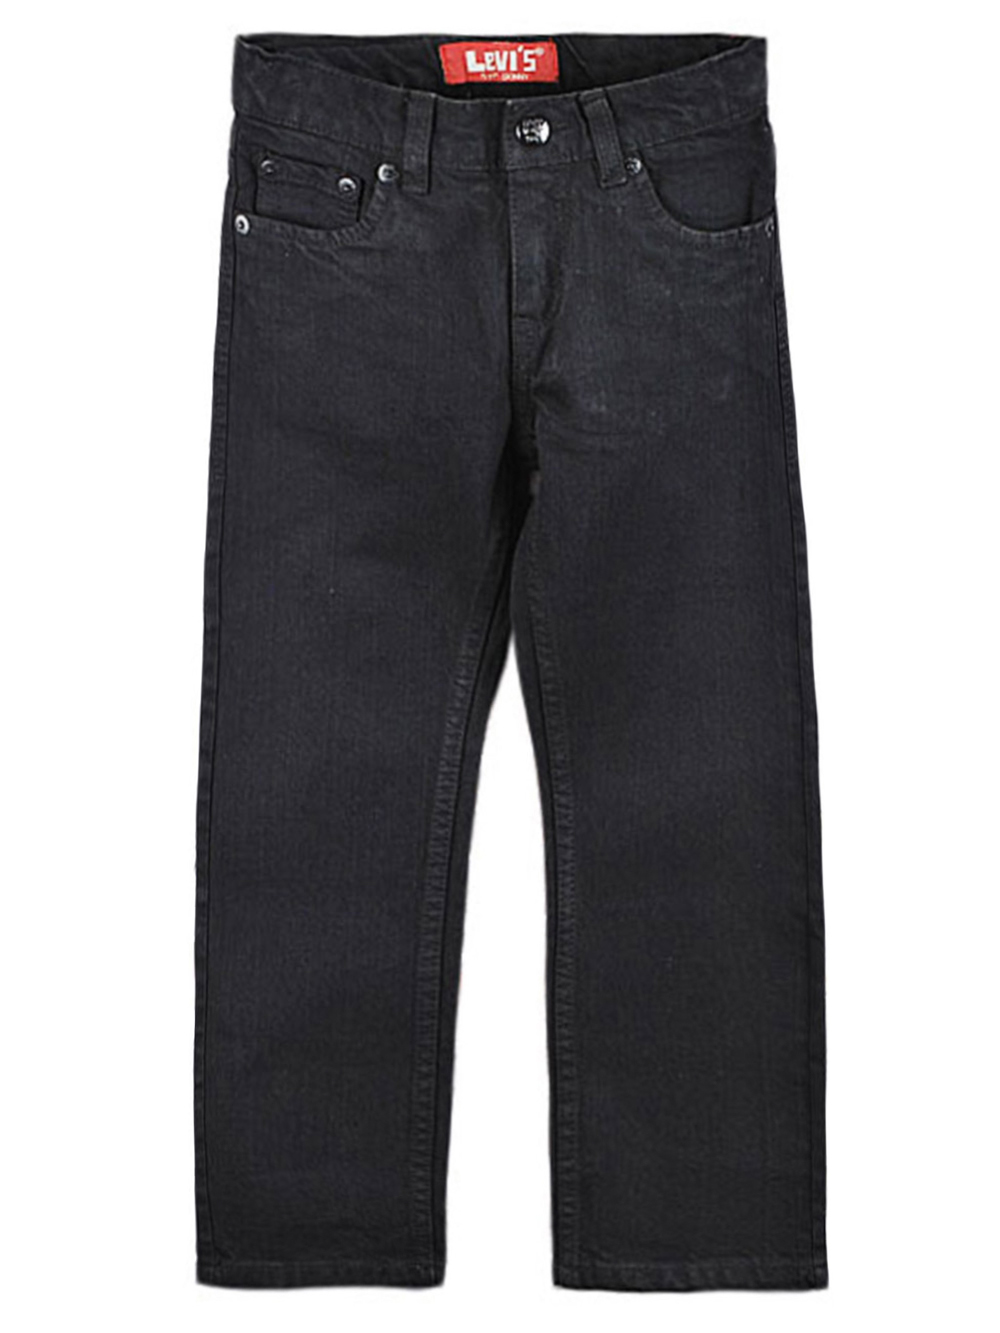 Size 7 Jeans for Boys